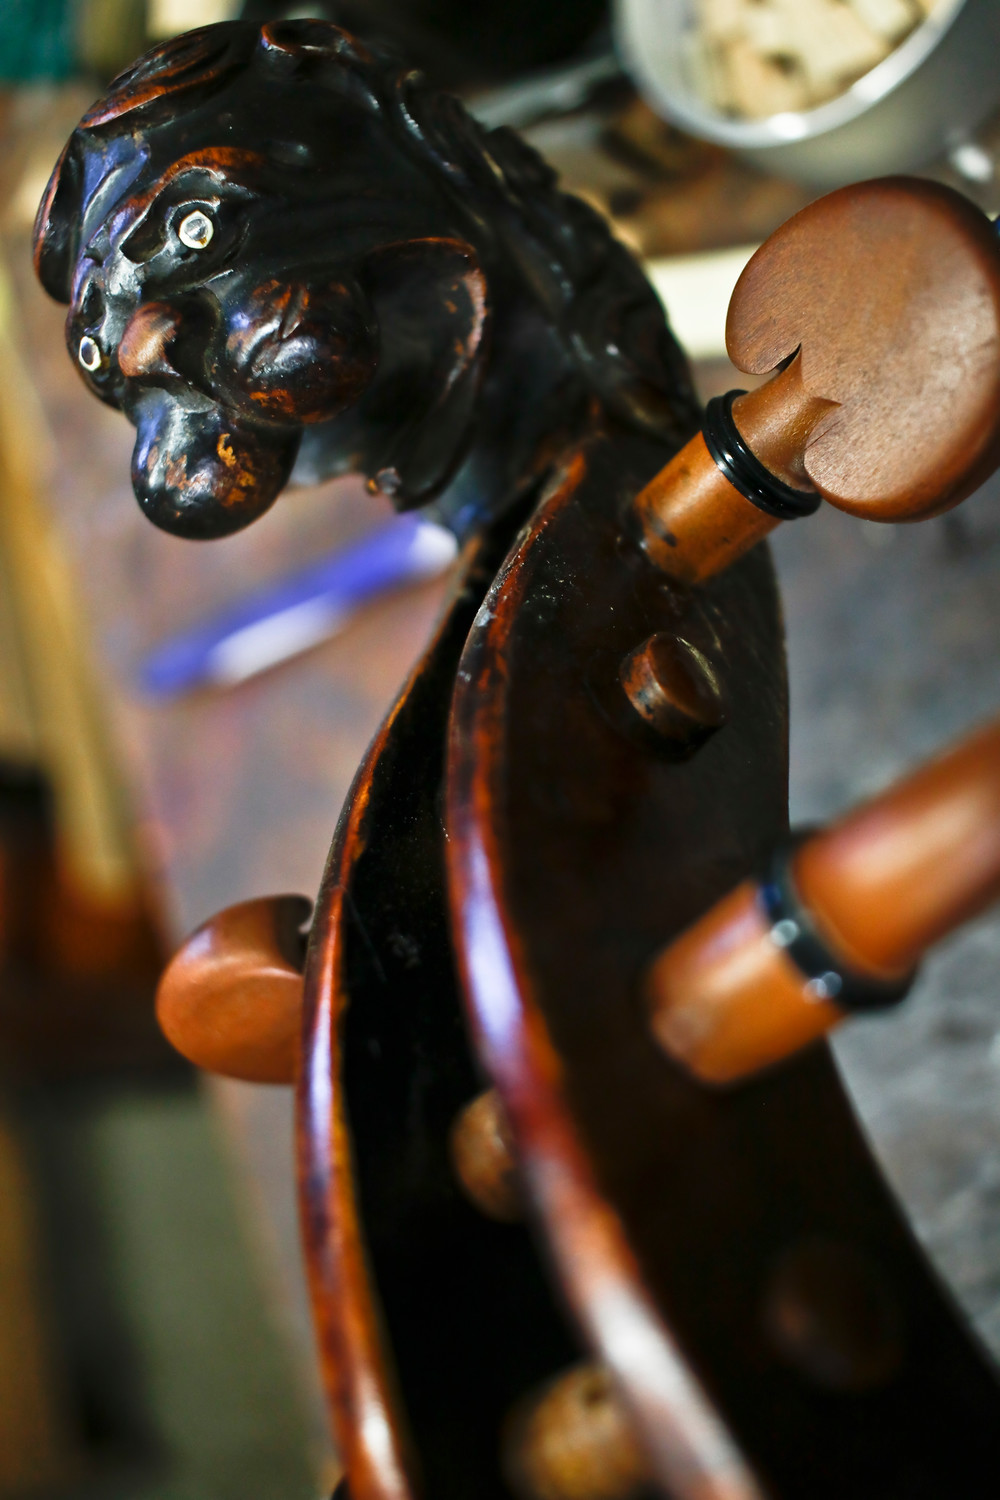 A Stainer Cello from the 1700s was the only one in the shop, with a uniquely carved lion's head scroll.